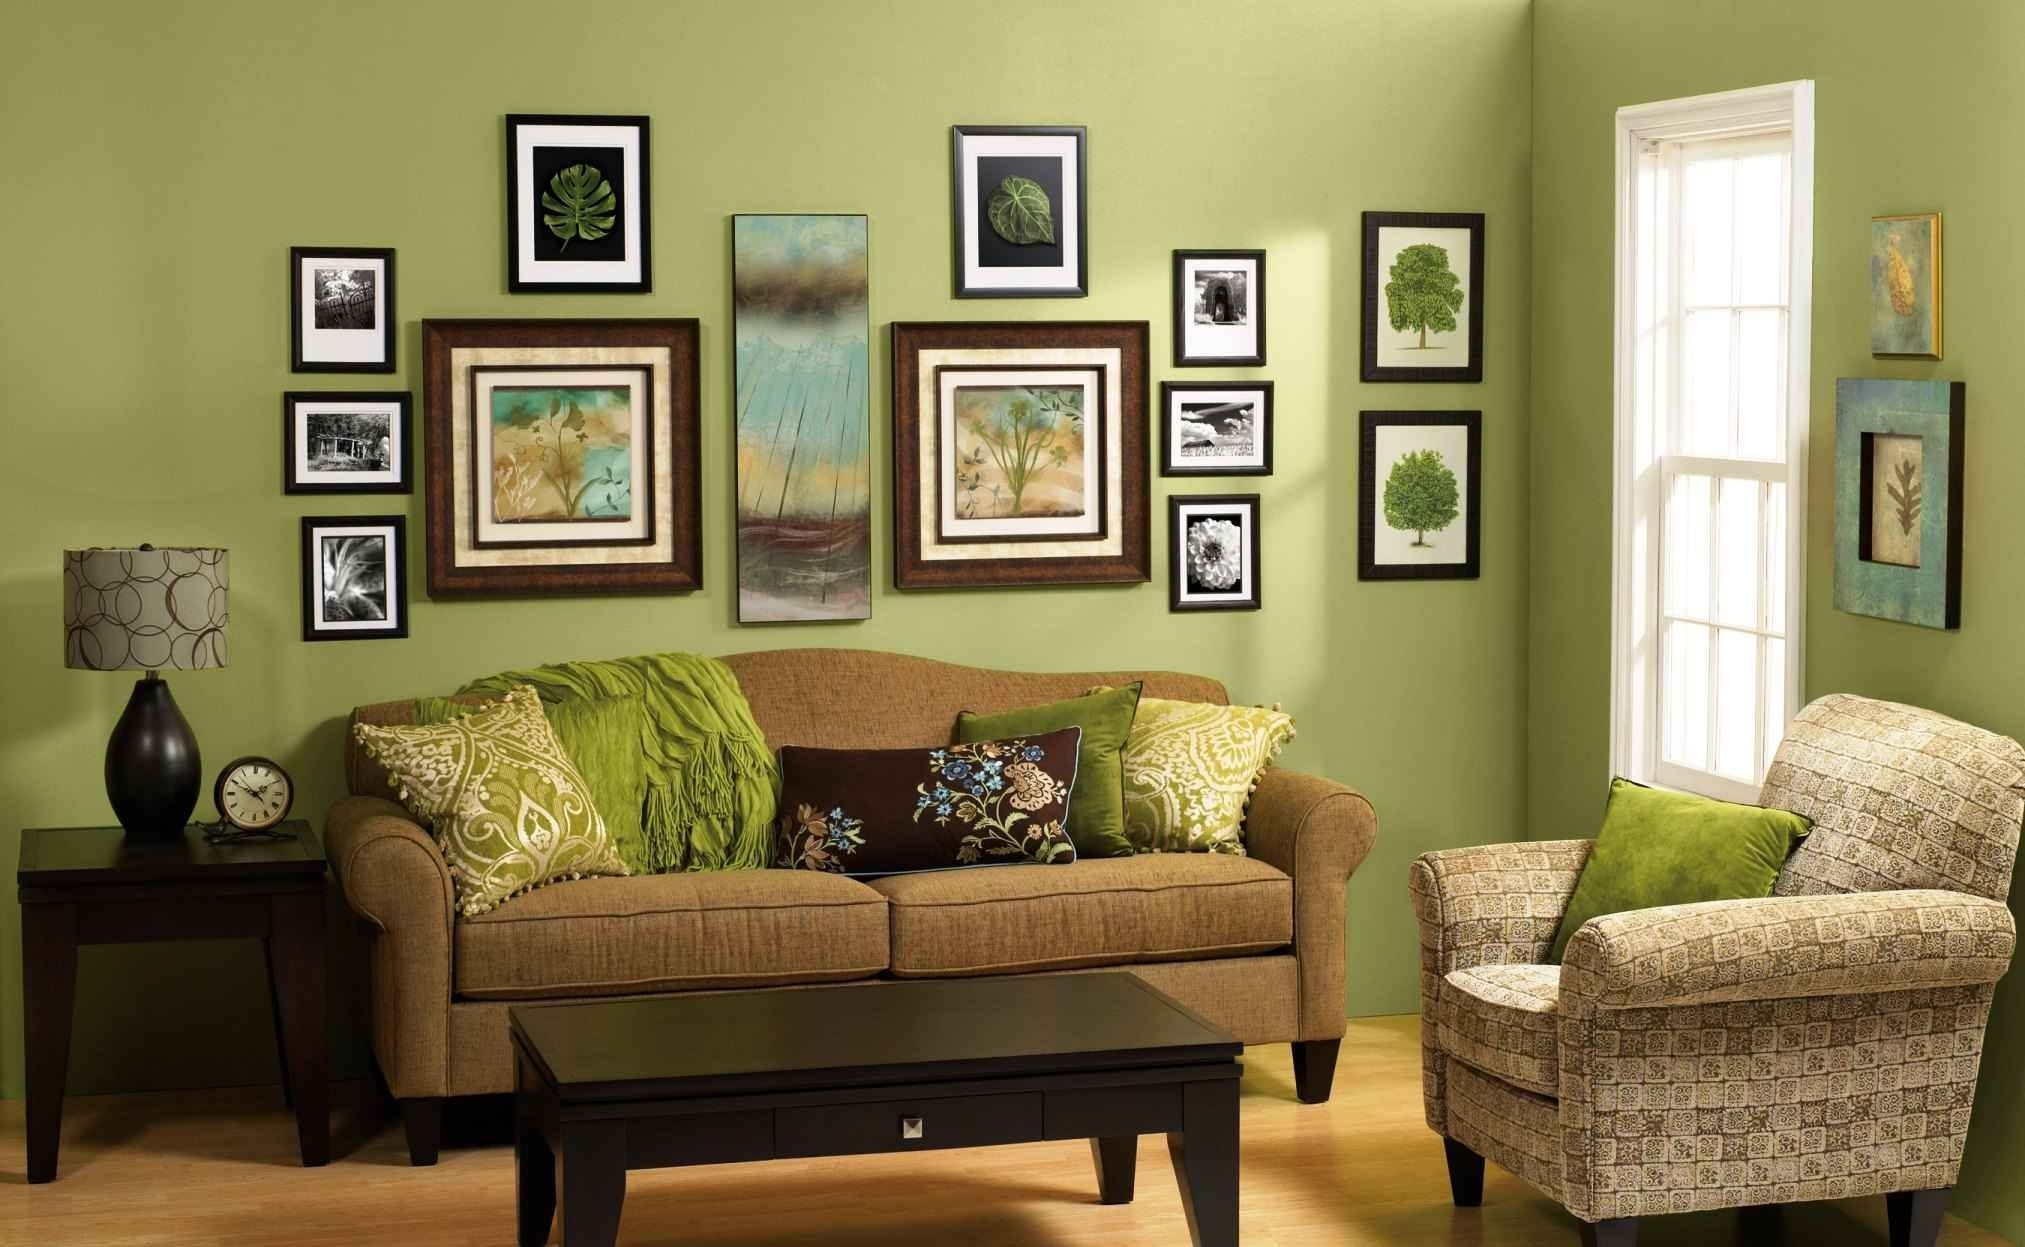 10 Ideal Small Living Room Decorating Ideas On A Budget low budget decorating design ideas and a bedroom on frantic small 2020